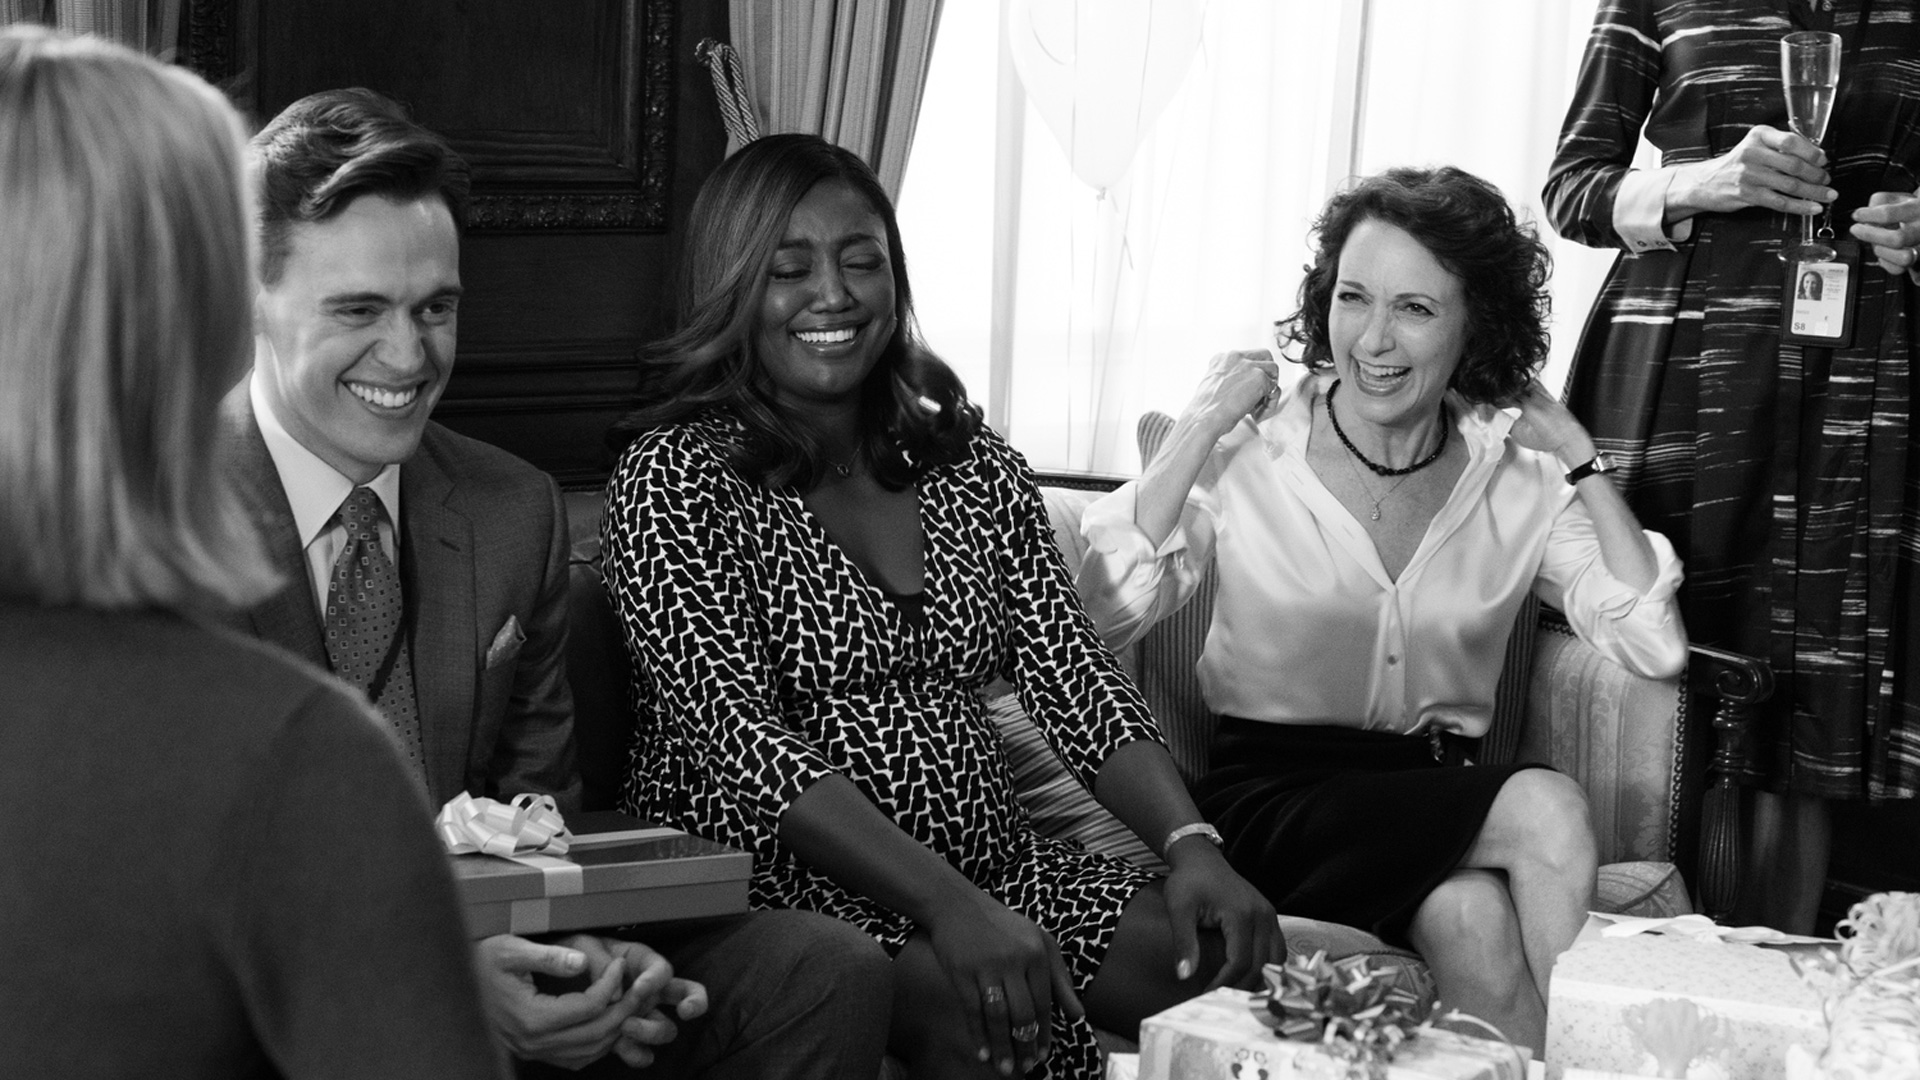 Erich, Patina, and Bebe Neuwirth (Nadine Tolliver) laugh between takes.